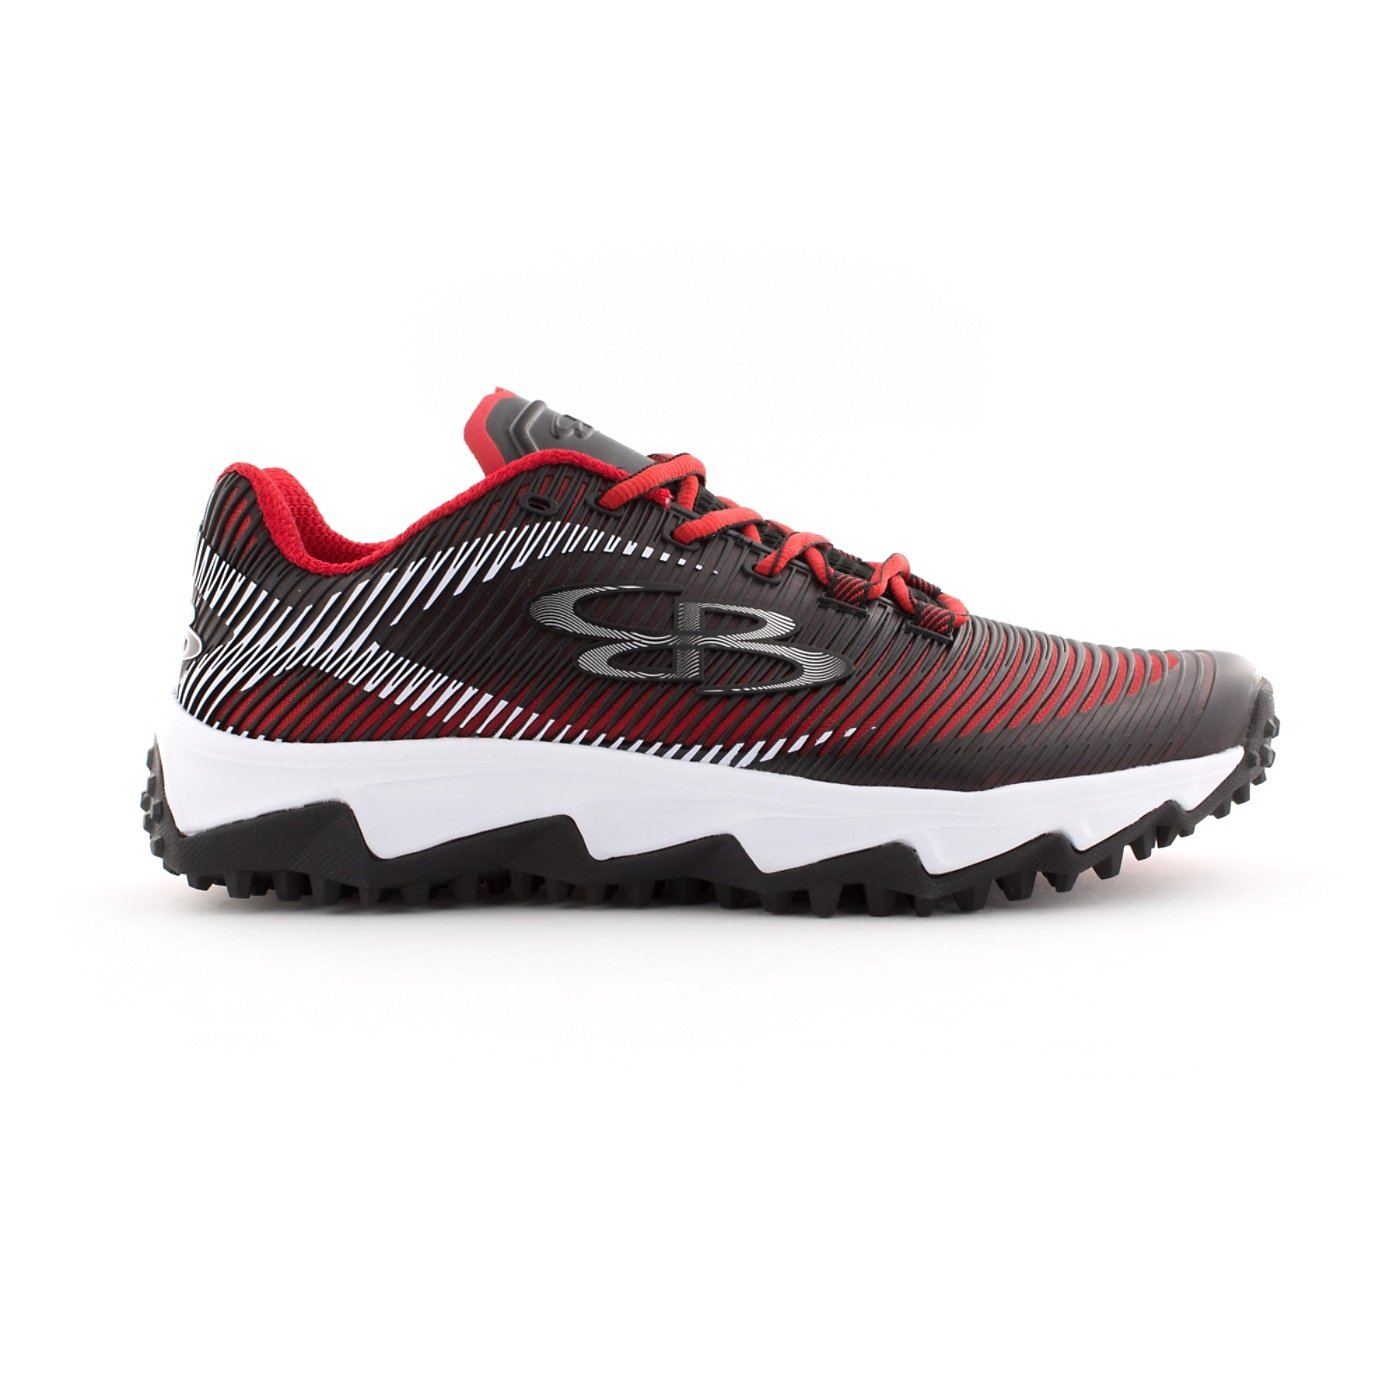 Boombah Men's Aftershock DPS Turf Black/Red - Size 10.5 by Boombah